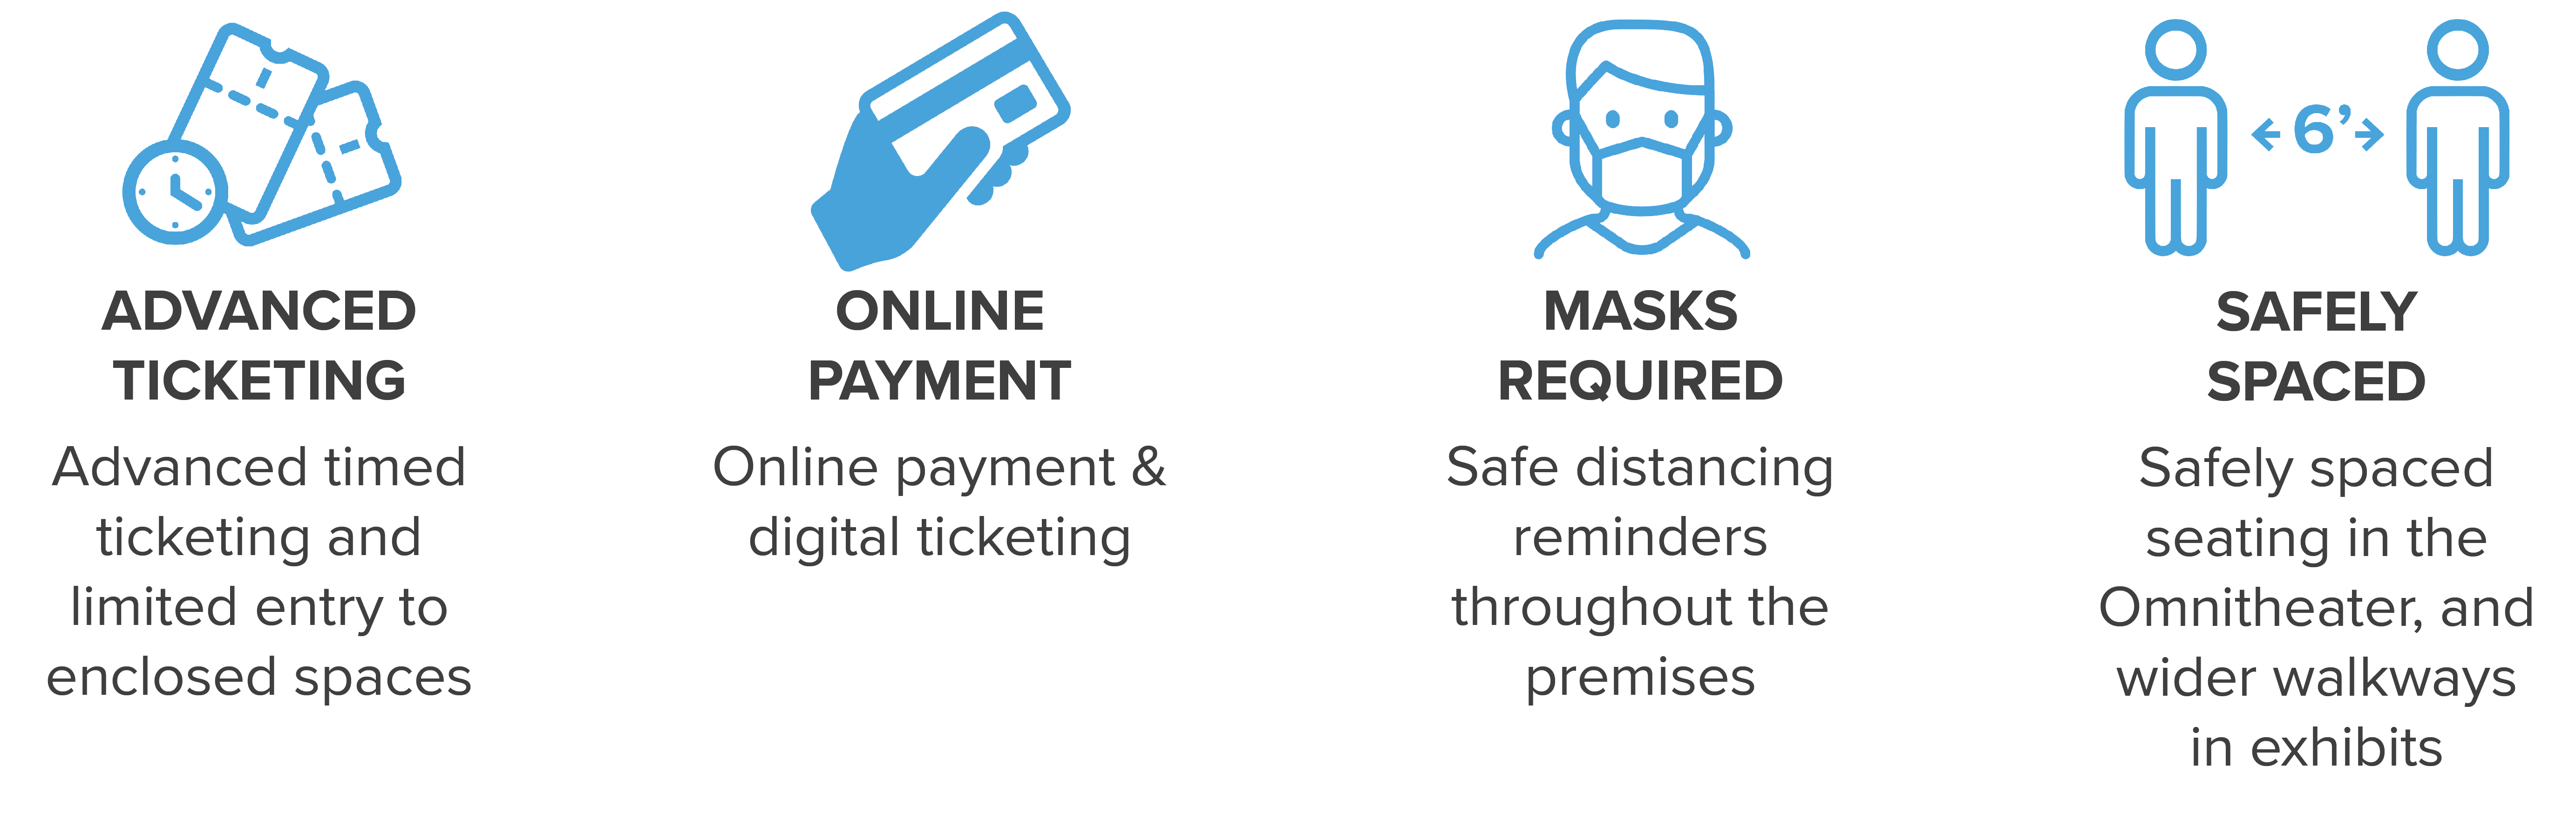 Icons for advanced ticketing, online payment, masks required, safely spaced